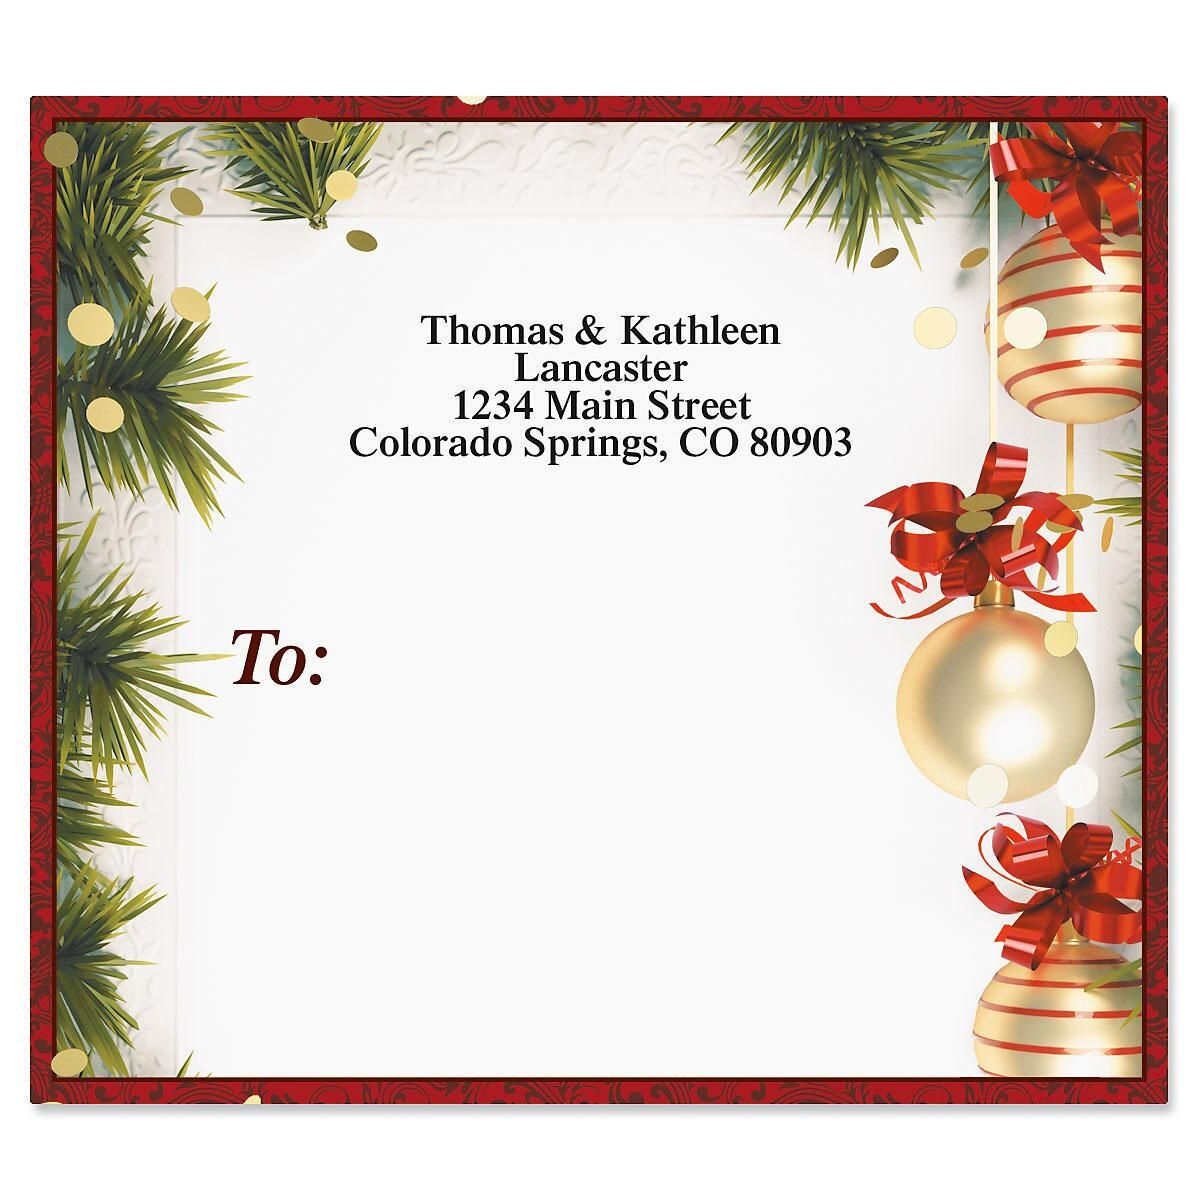 Christmas Twilight Package Labels | Colorful Images